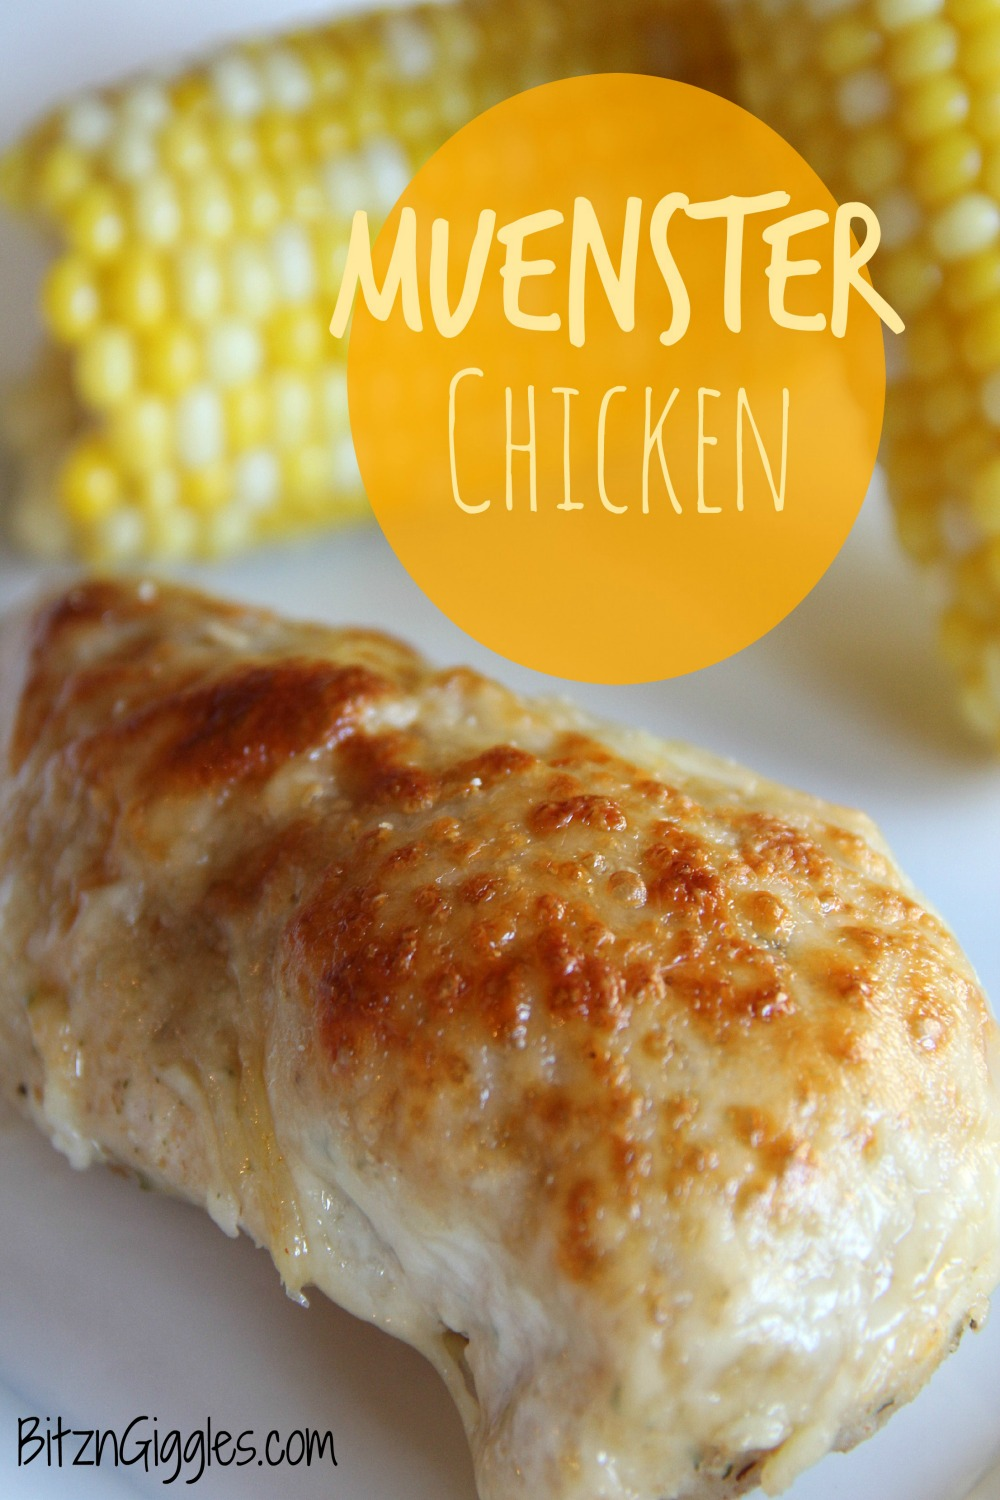 Muenster Chicken - Oven-baked chicken breasts are dredged in bread crumbs, covered with creamy Muenster cheese and infused with a subtle hint of white wine!